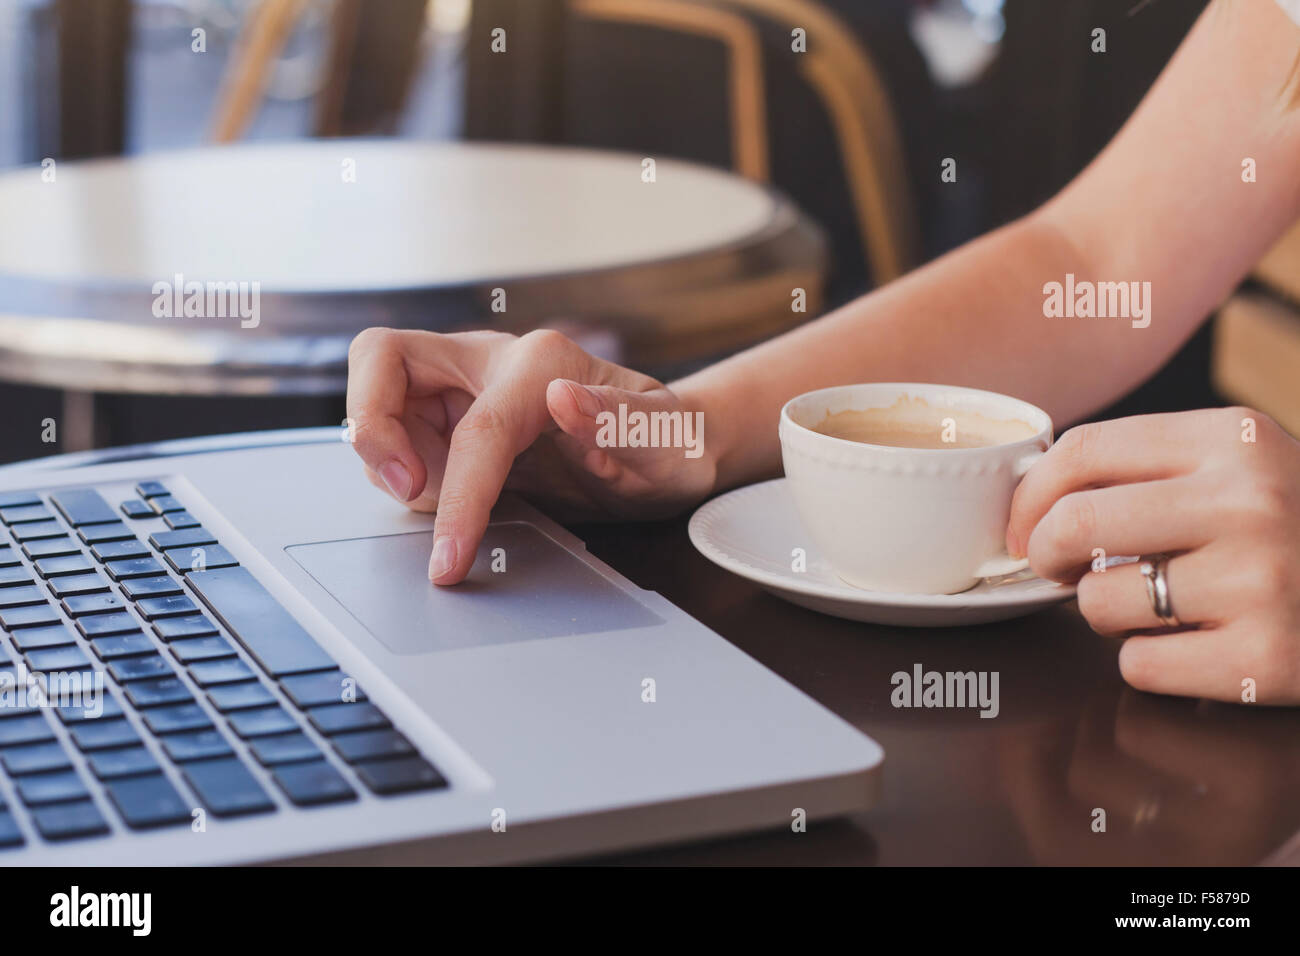 checking email in cafe with cup of coffee - Stock Image